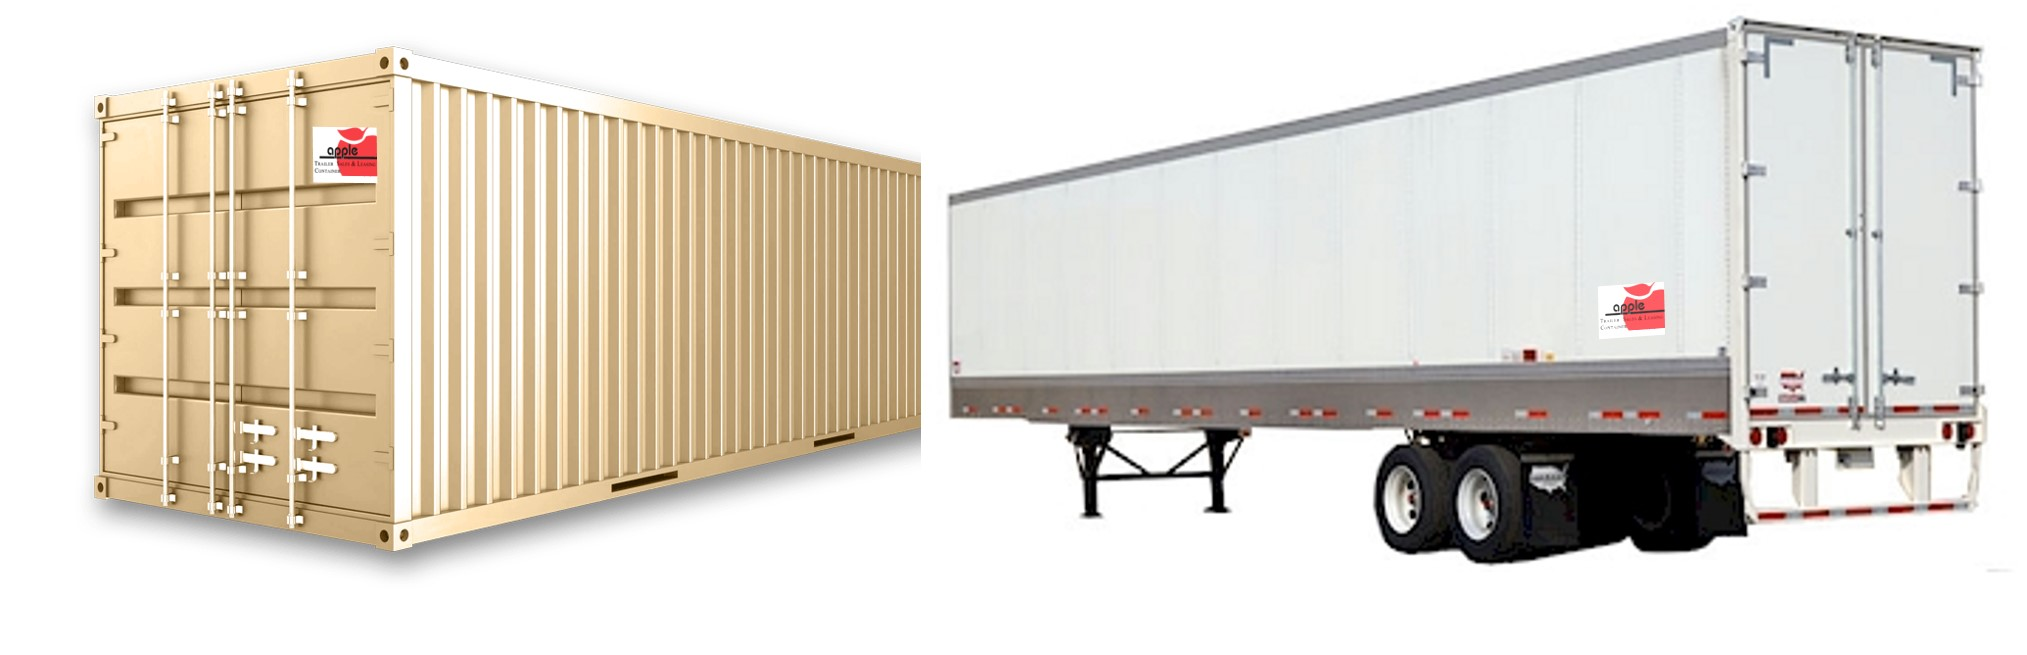 Storage Container and Trailer Rentals in MA Apple Truck and Trailer